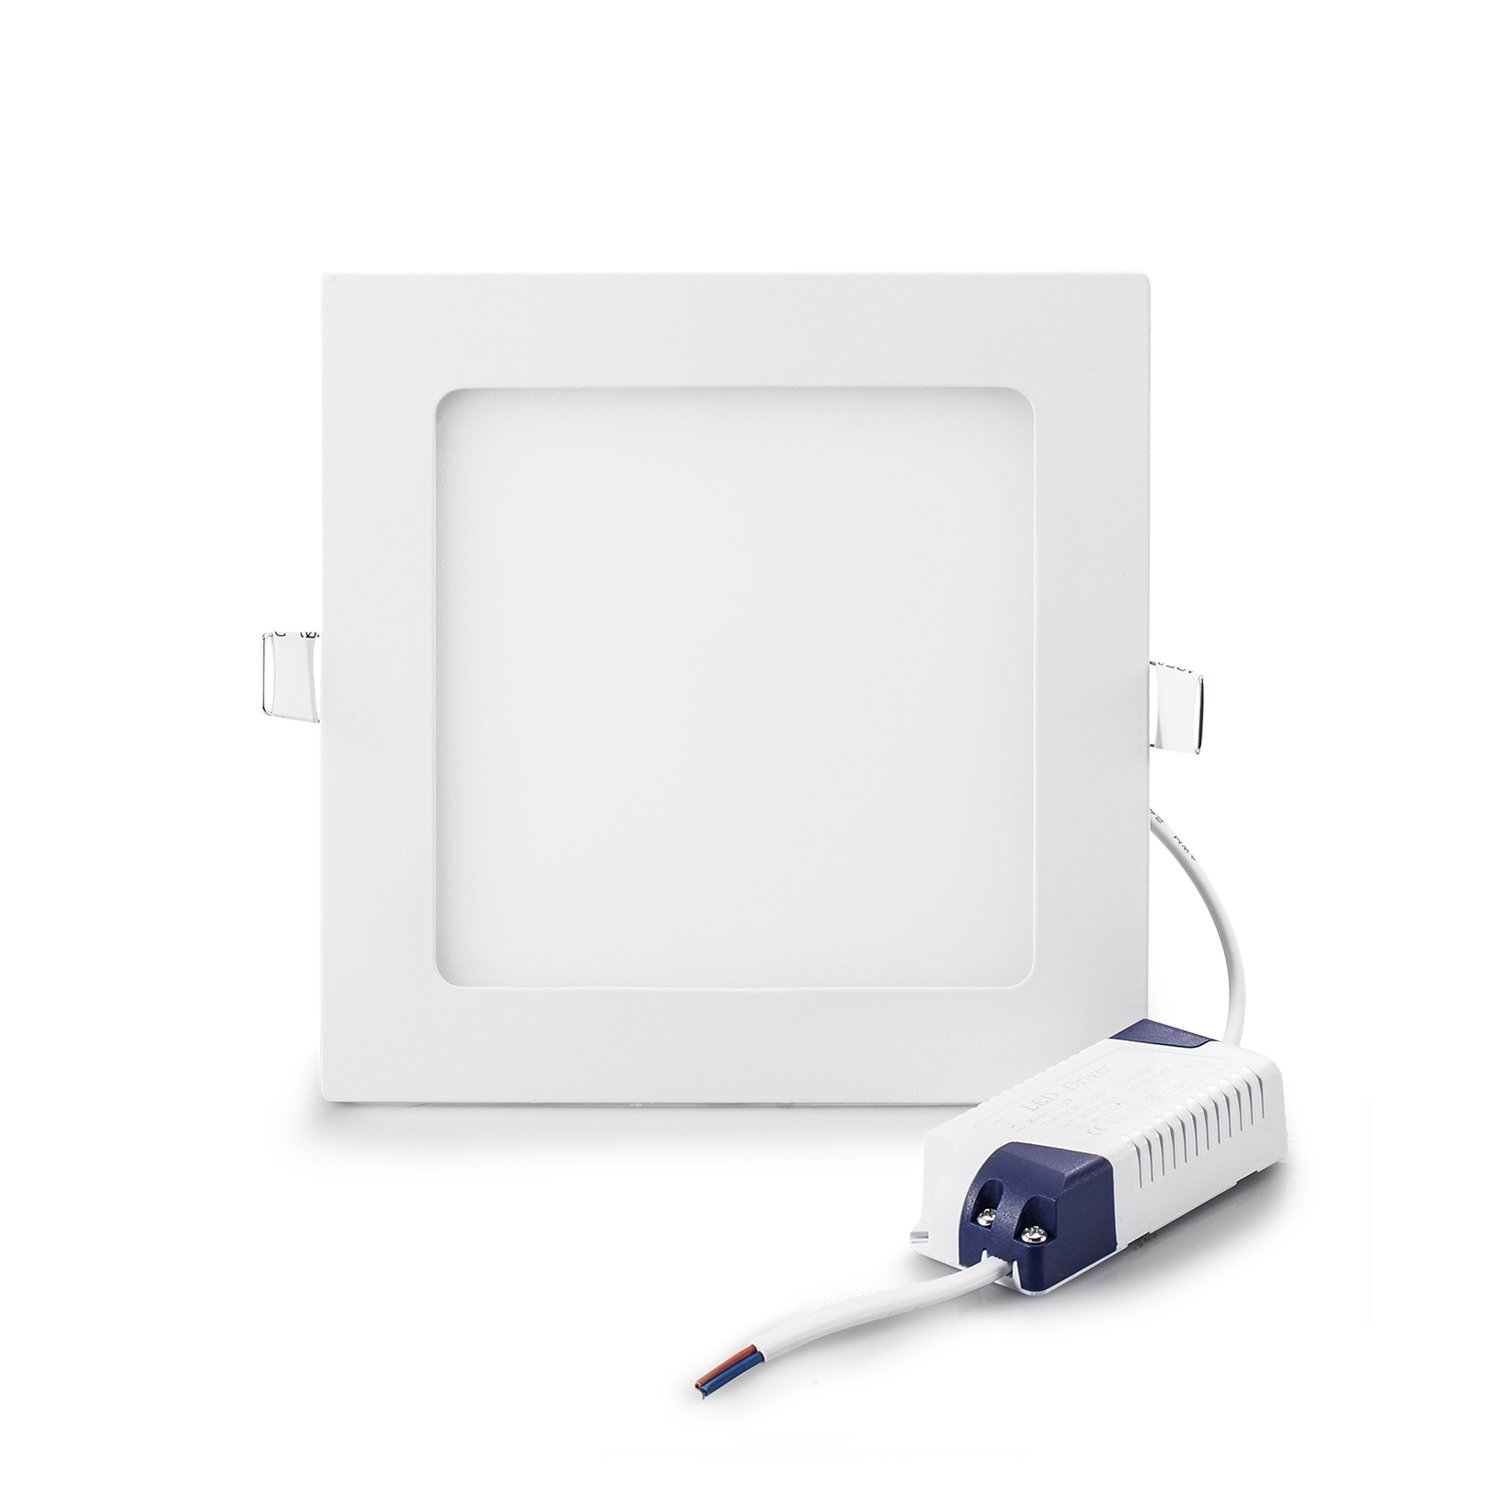 Gianor 18W Led Squre Recessed Lighting 8'' Ultra Thin Led Ceiling Lights no-Dimmable Panel Light Day White Fixture 6000K